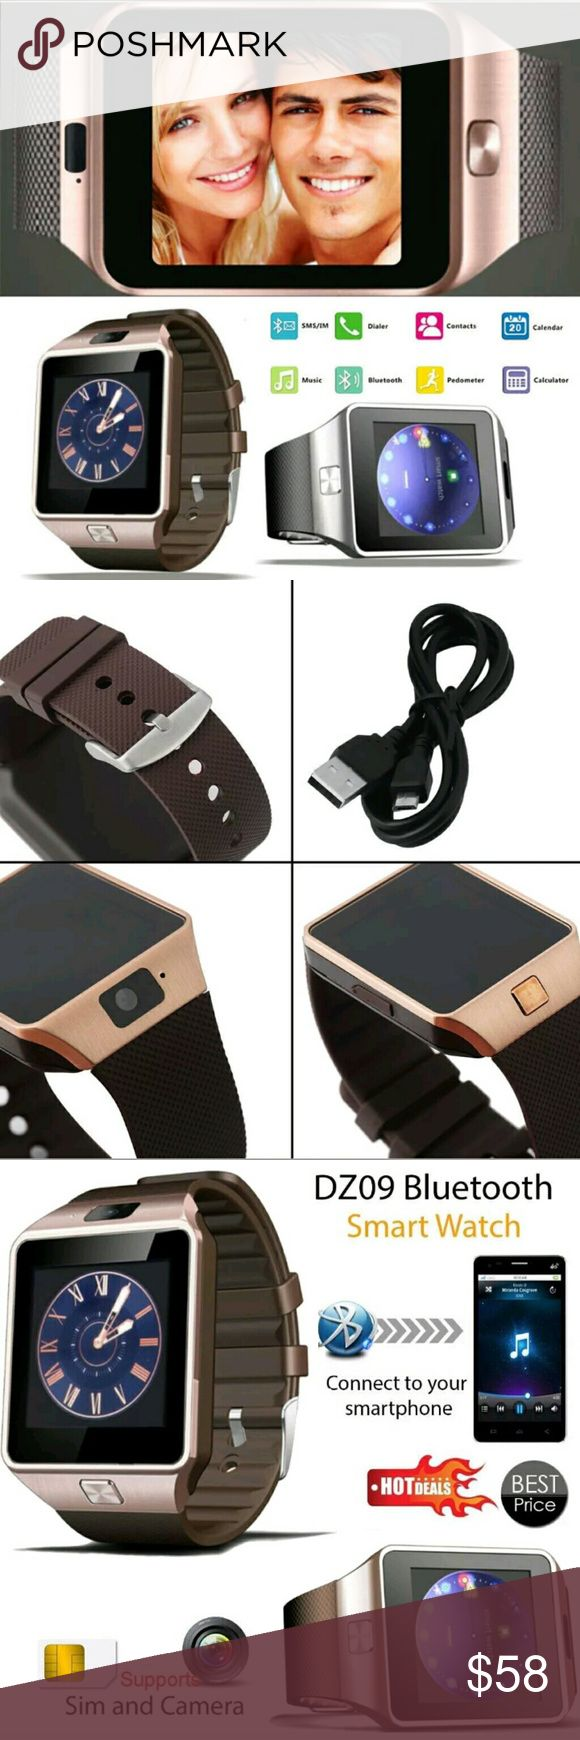 Classy Multifunctional Bluetooth SIM Smartwatch √GSM UNLOCKED √Pedometer  √Monitor your sleep quality  √Search your watch for contacts  √Add contacts directly to your watch  √Anti-lost Technology √Alarm Clock √Calendar √File manager √Facebook √Audio player (Mp3) √FM Radio  √WhatsApp √Camera & picture storage  √Bluetooth Dialer, Call logs Message,  √MTK6261, DZ09 √RAM + ROM: 32MB RAM + 32MB ROM, TF Card up to 32GB  Compatible: Samsung Galaxy S7 and other Android smartphones + iPhone and iOS…